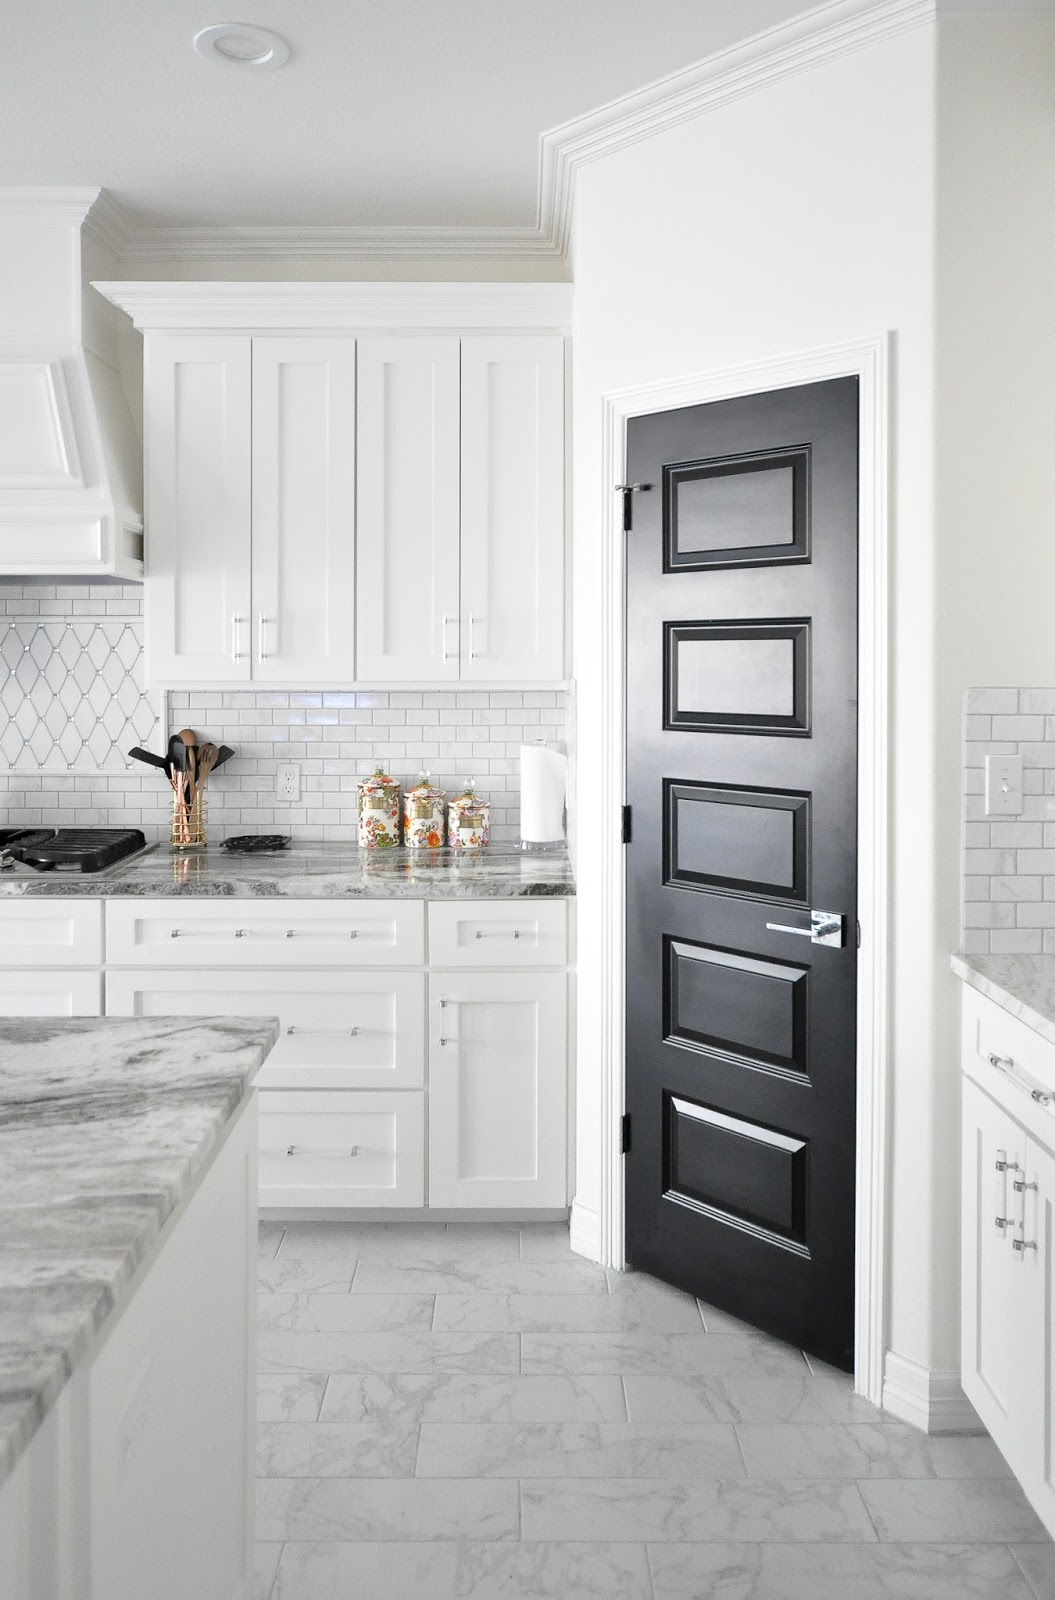 A black pantry door in an all white shaker cabinet kitchen with marble floors and backsplash. Love the bright and airy feel in here!